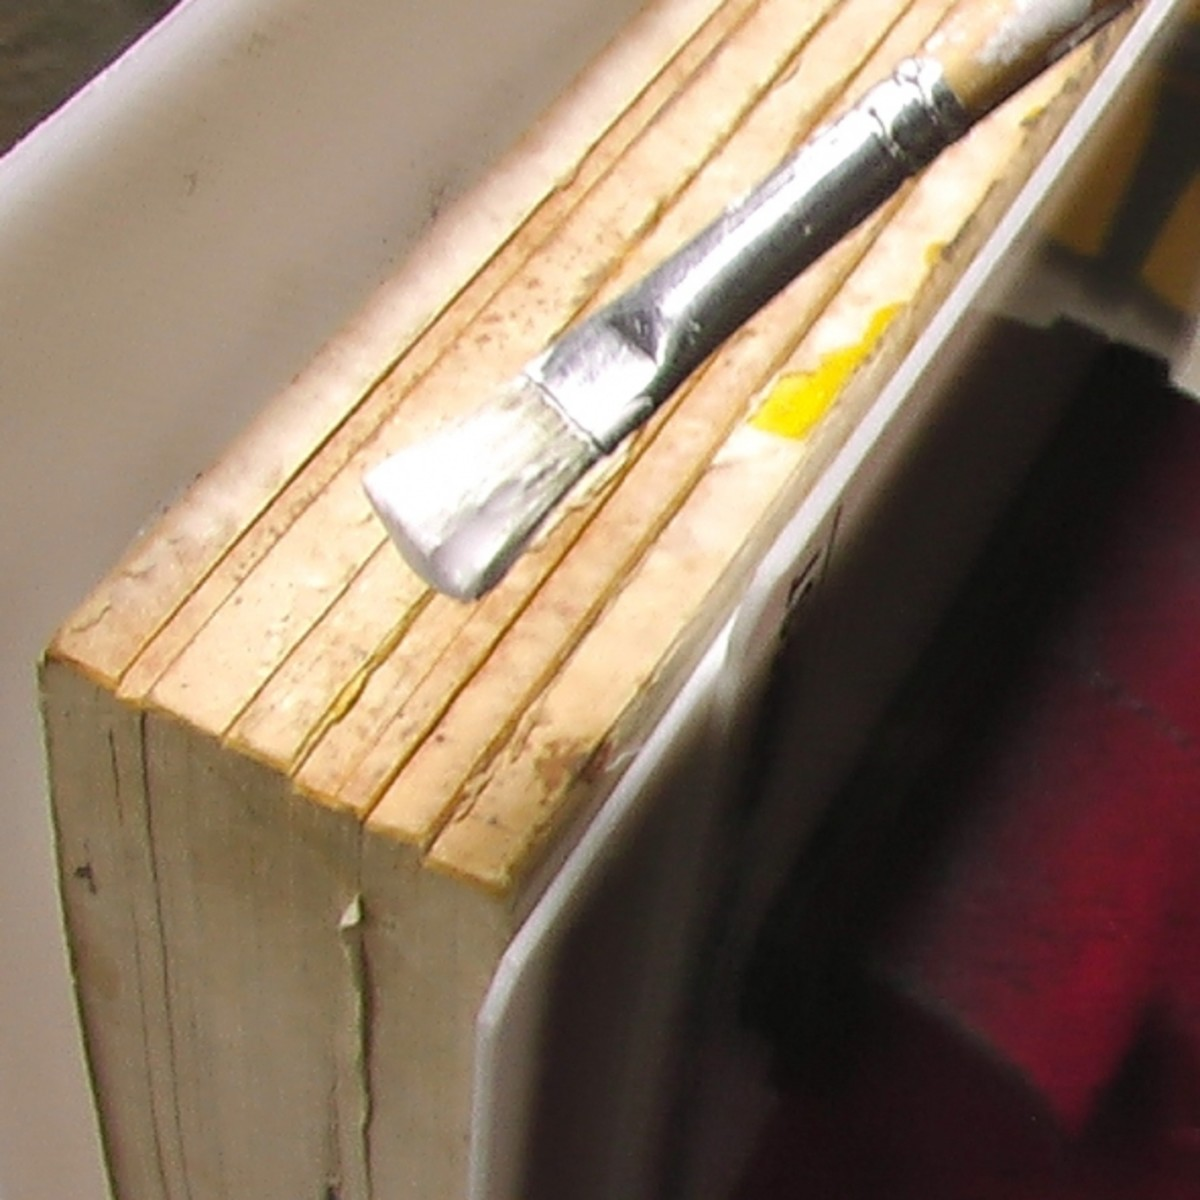 Gluing the separated signatures of a paperback cookbook. Notice how the signatures have been separated due to time and use. I am using Brodart glue.